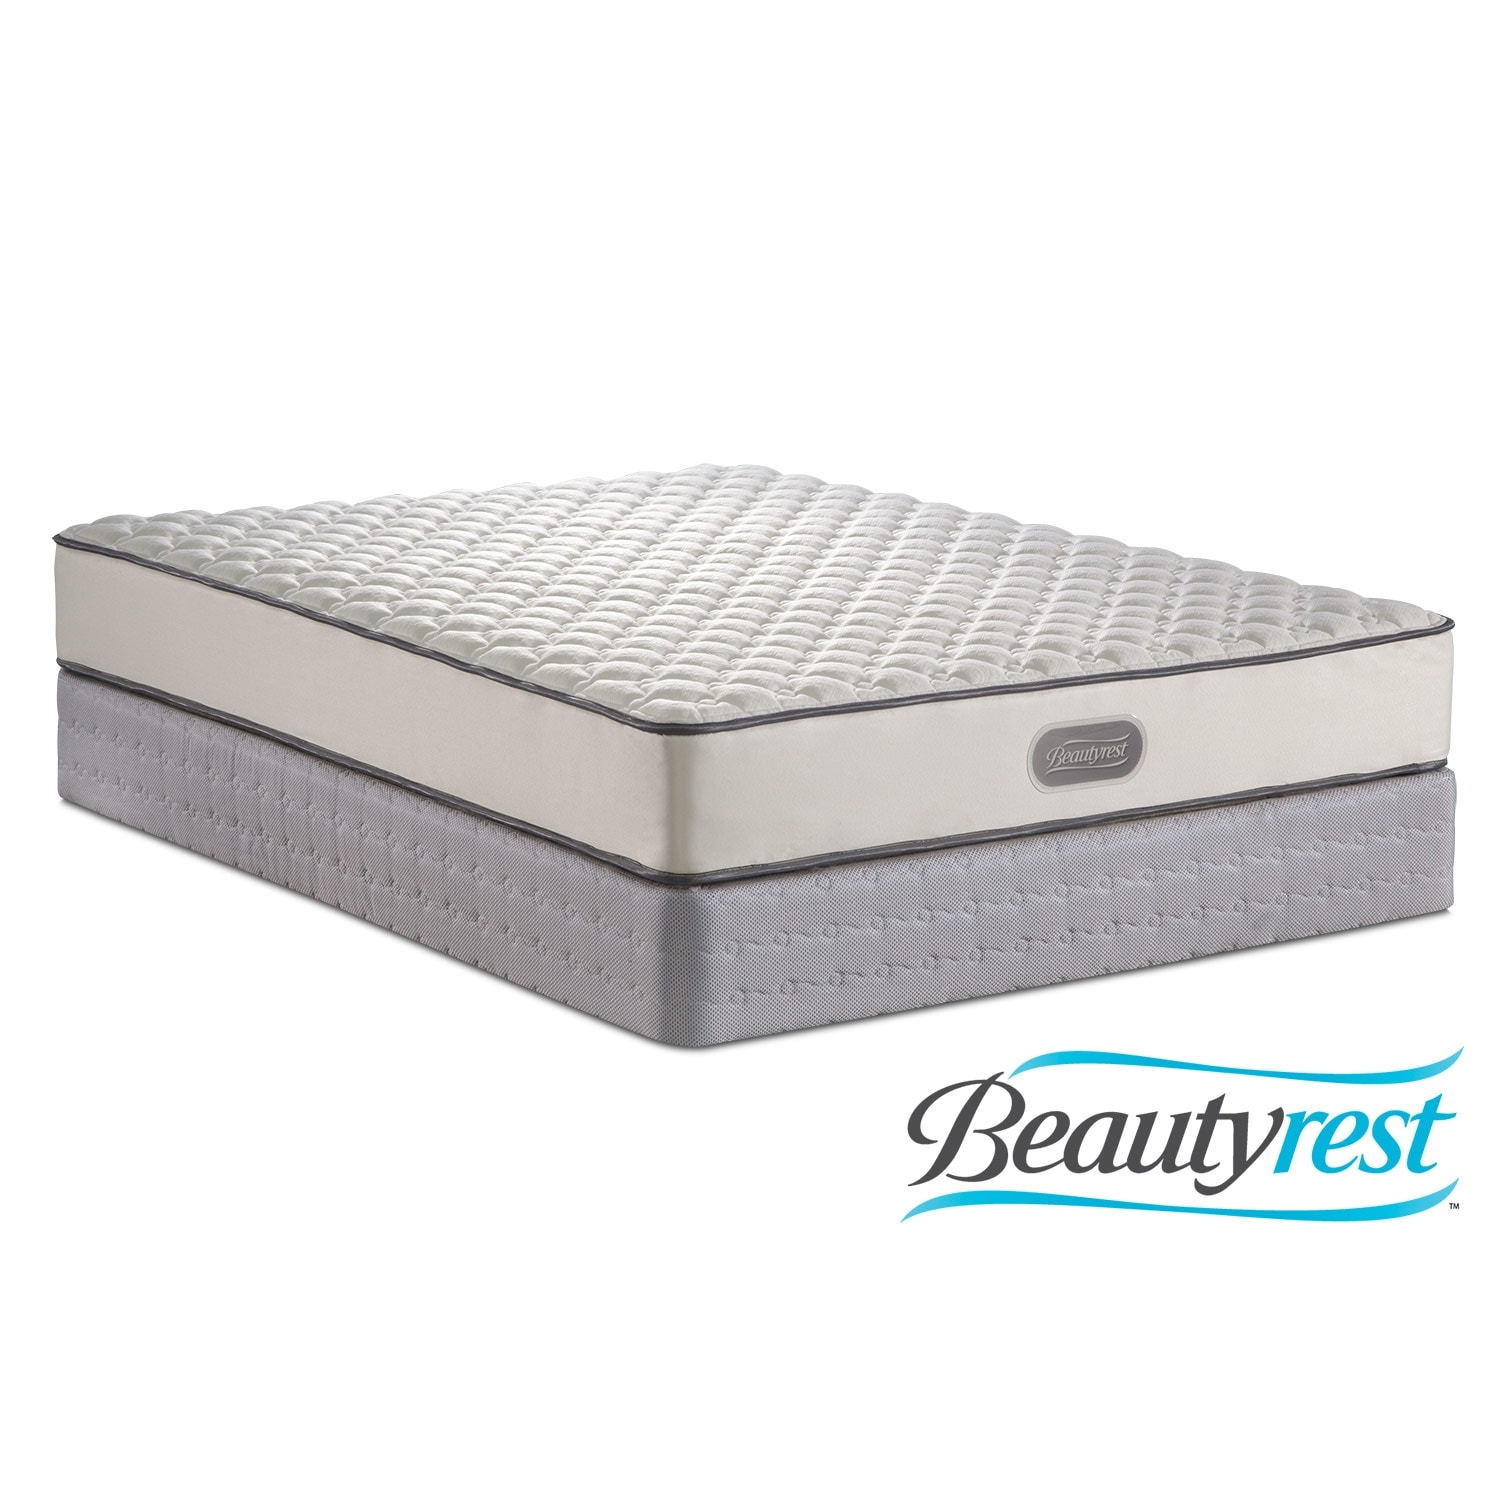 Mattresses and Bedding - Fox Hills Queen Mattress/Foundation Set